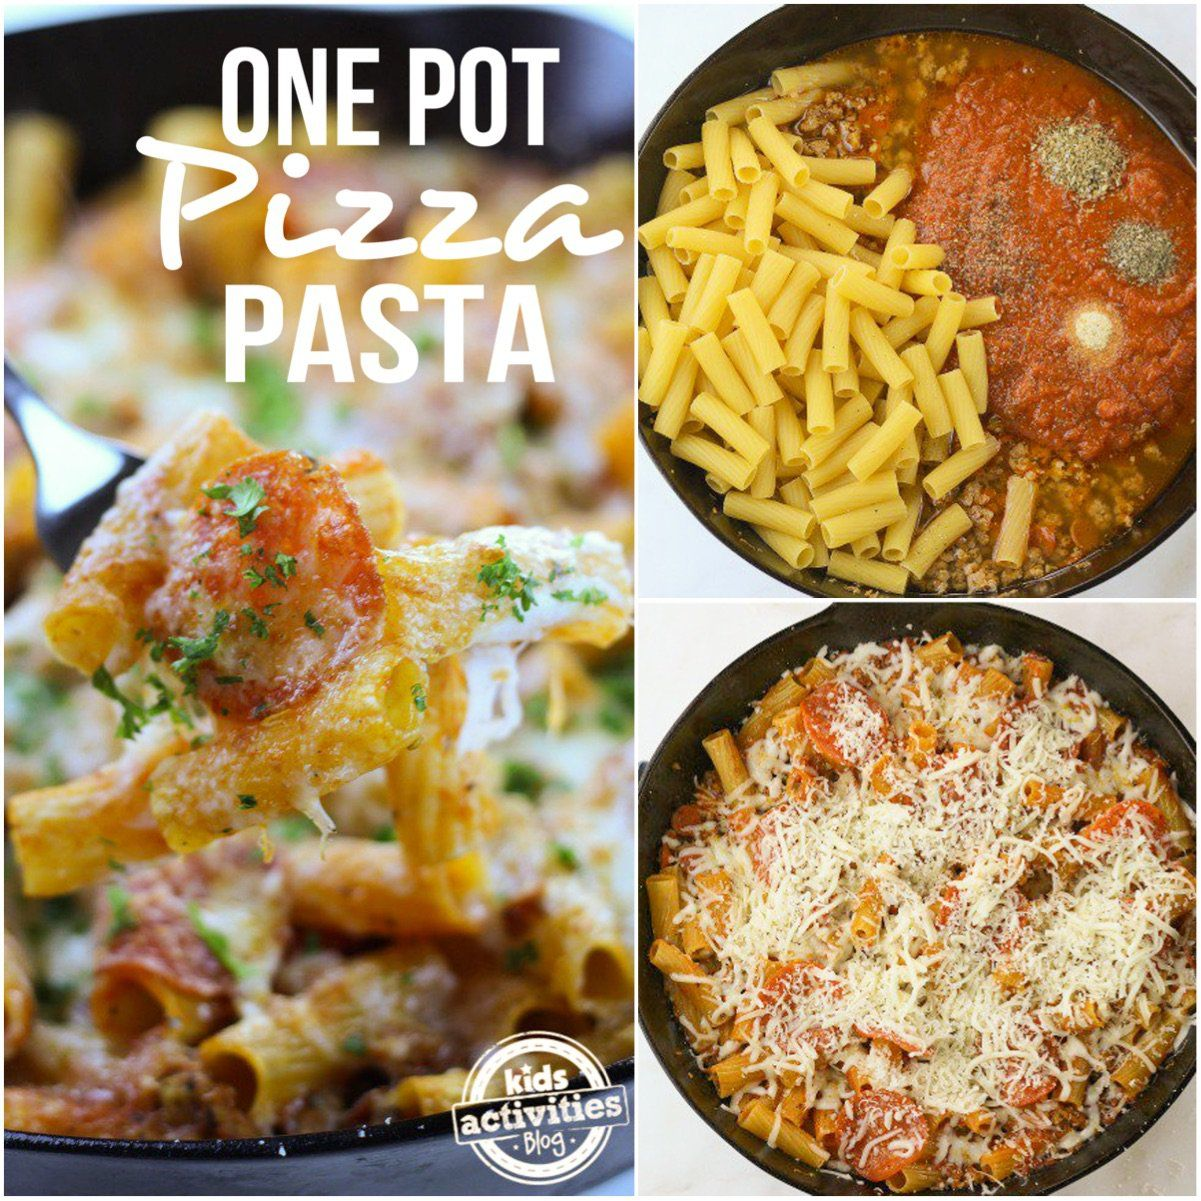 One Pot Pizza Pasta  pepperoni  isn't creditable so don't use it as your meat component